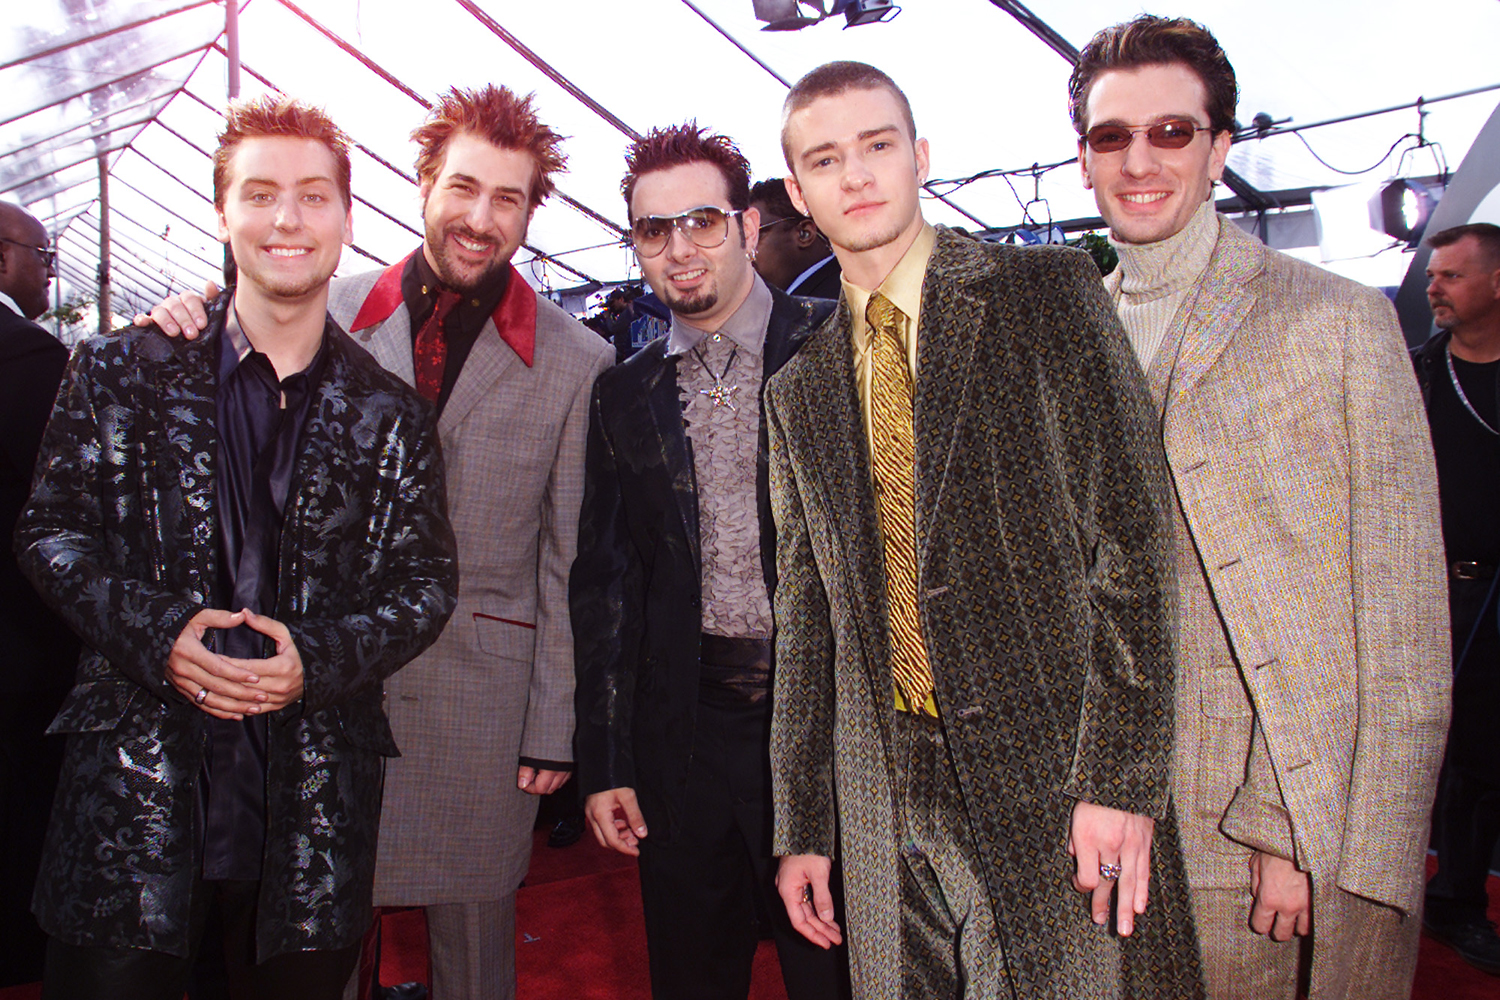 N'Sync arrive at the 43rd Annual Grammy Awards